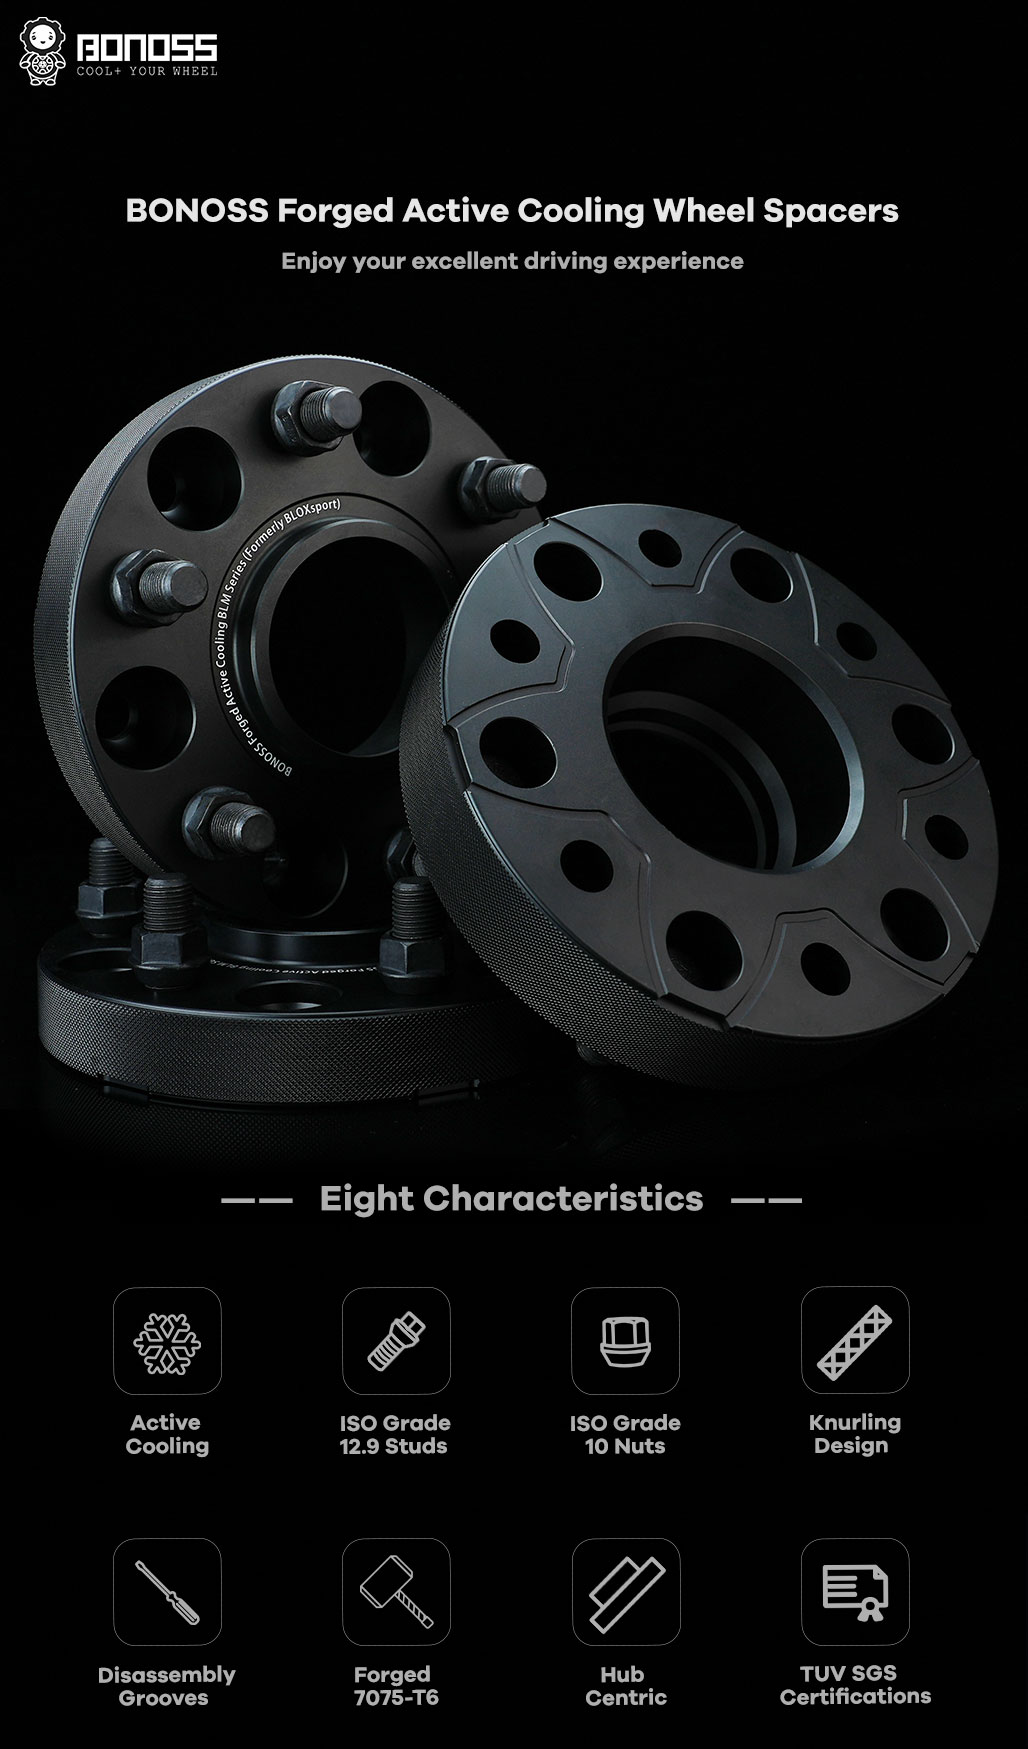 BONOSS Forged Active Cooling Hubcentric Wheel Spacers 6 Lug Wheel Adapters Wheel ET Spacers Car Wheel Spacers AL7075-T6